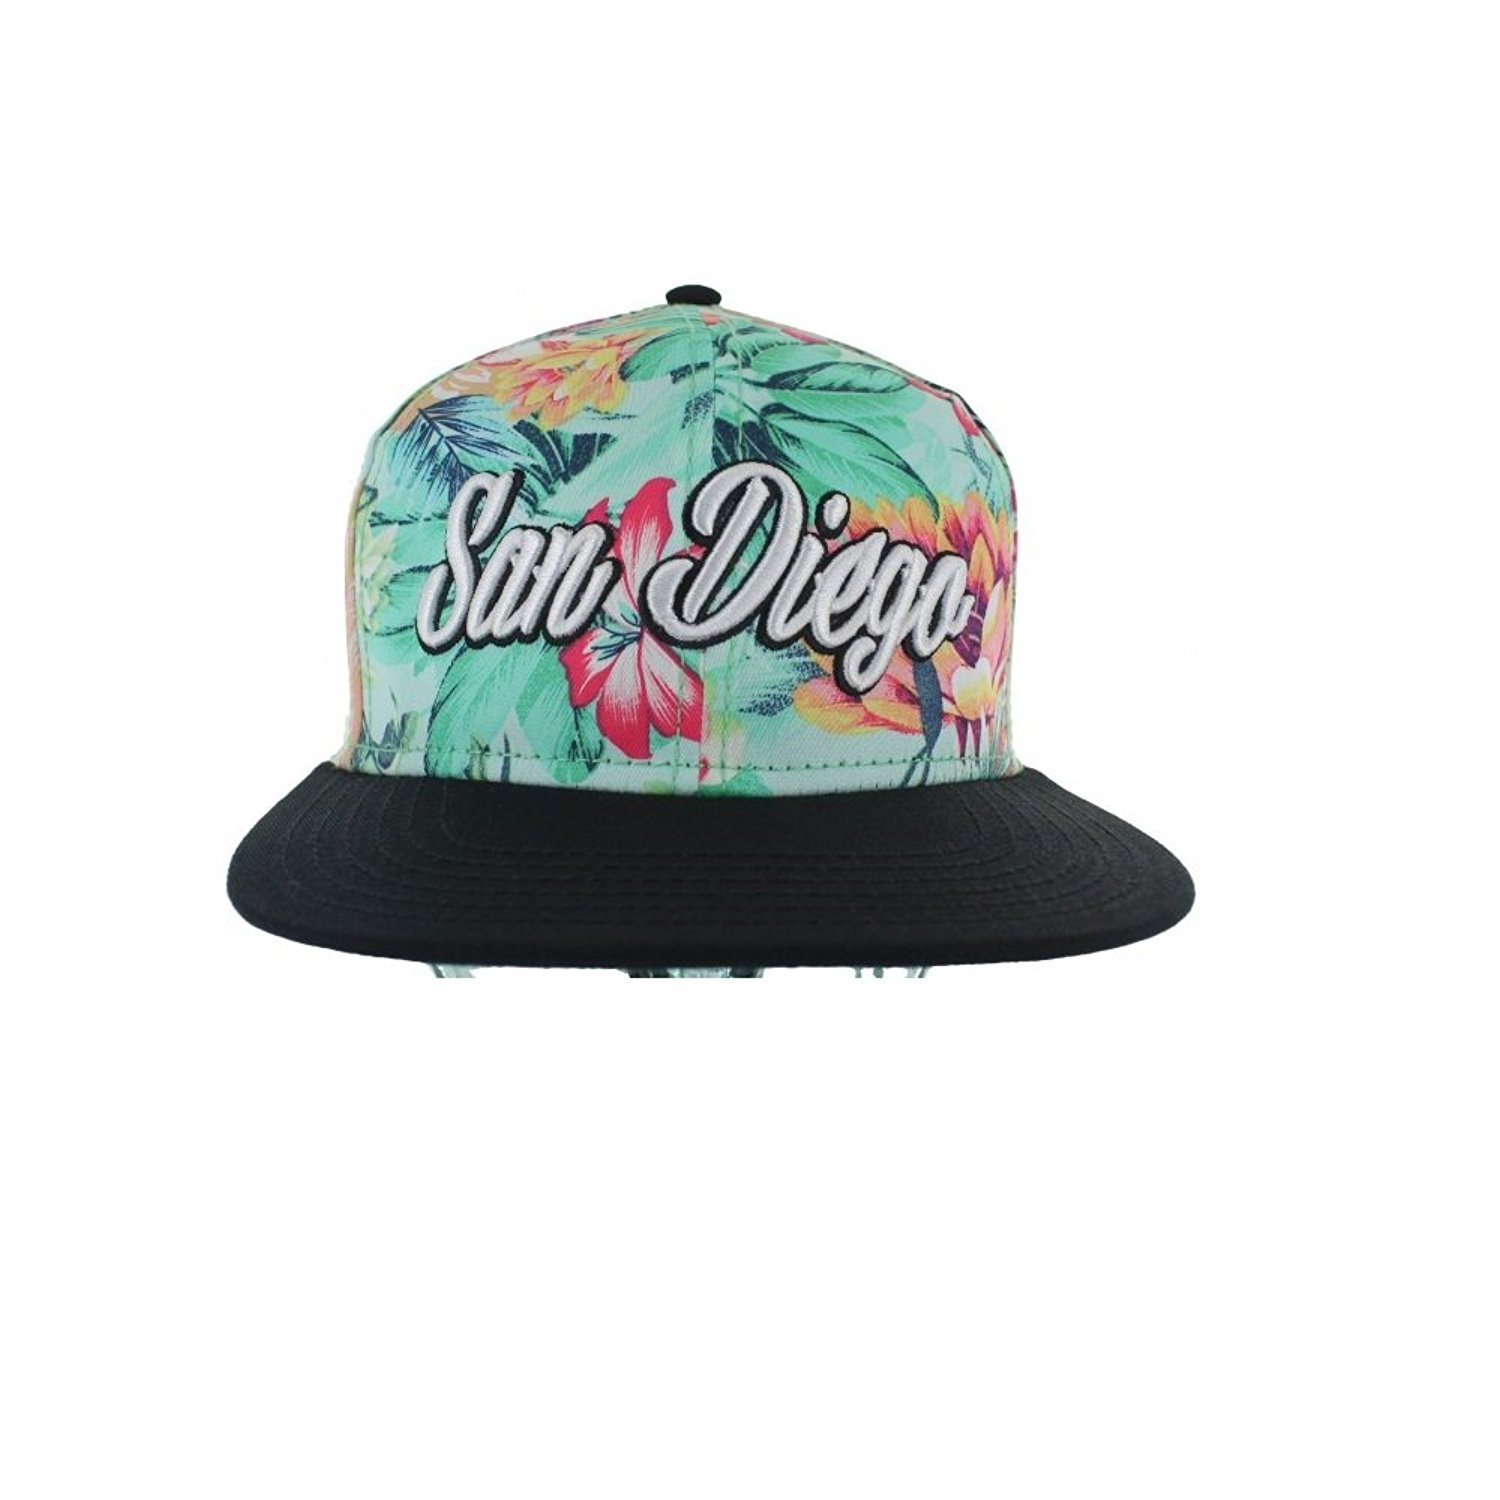 5bf3f35f4b26d1 Get Quotations · Fashion Floral Snapback Hats Collection - The Floral Snapback  Caps